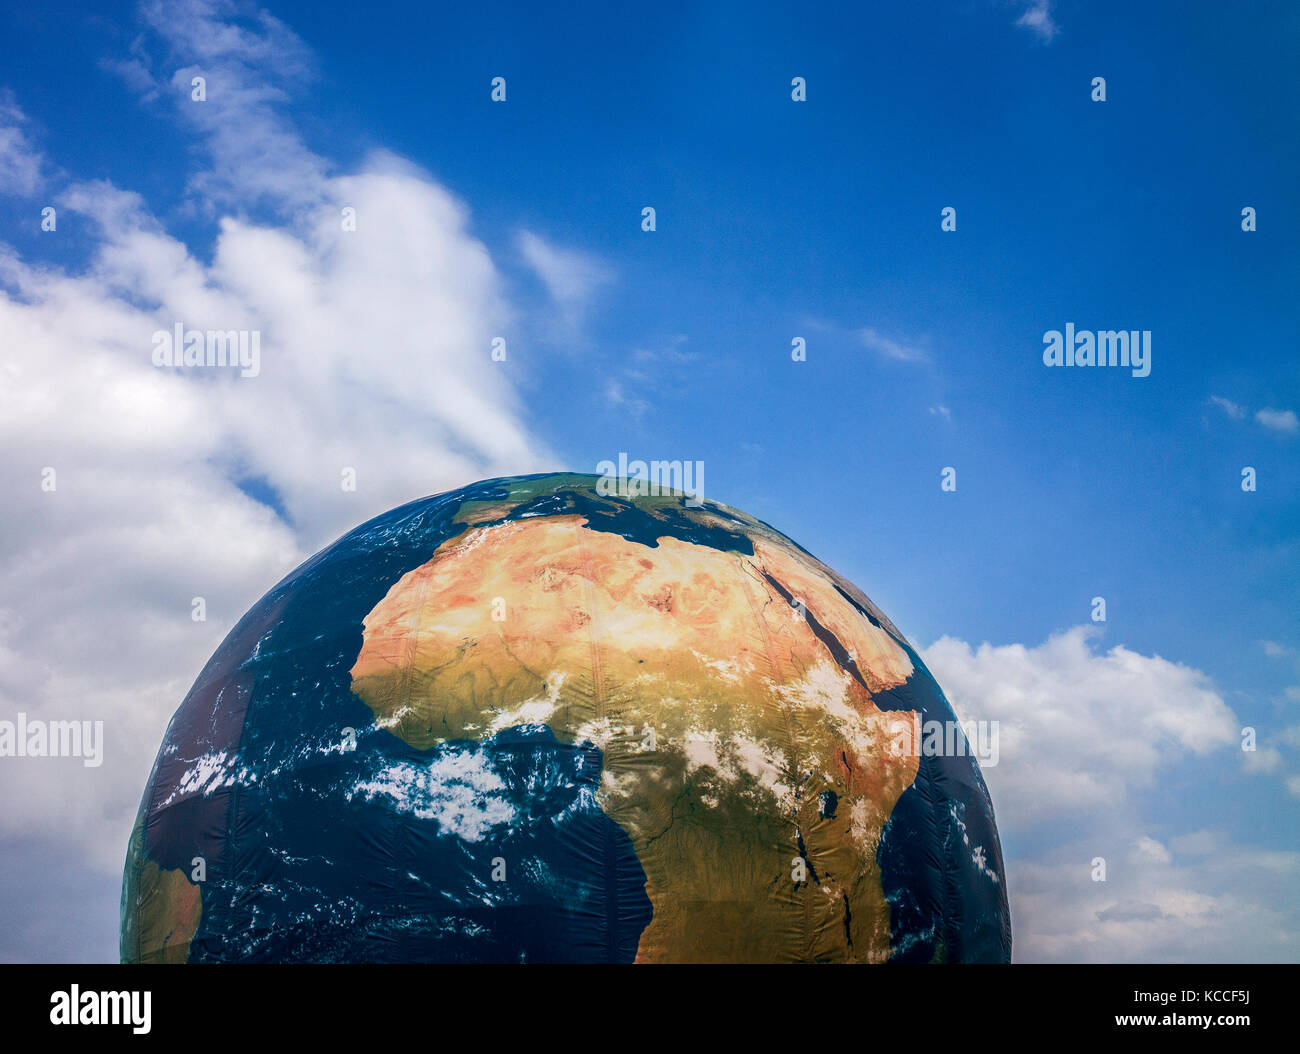 inflatable globe ,climate change installation in docks at Aarhus denmark - Stock Image